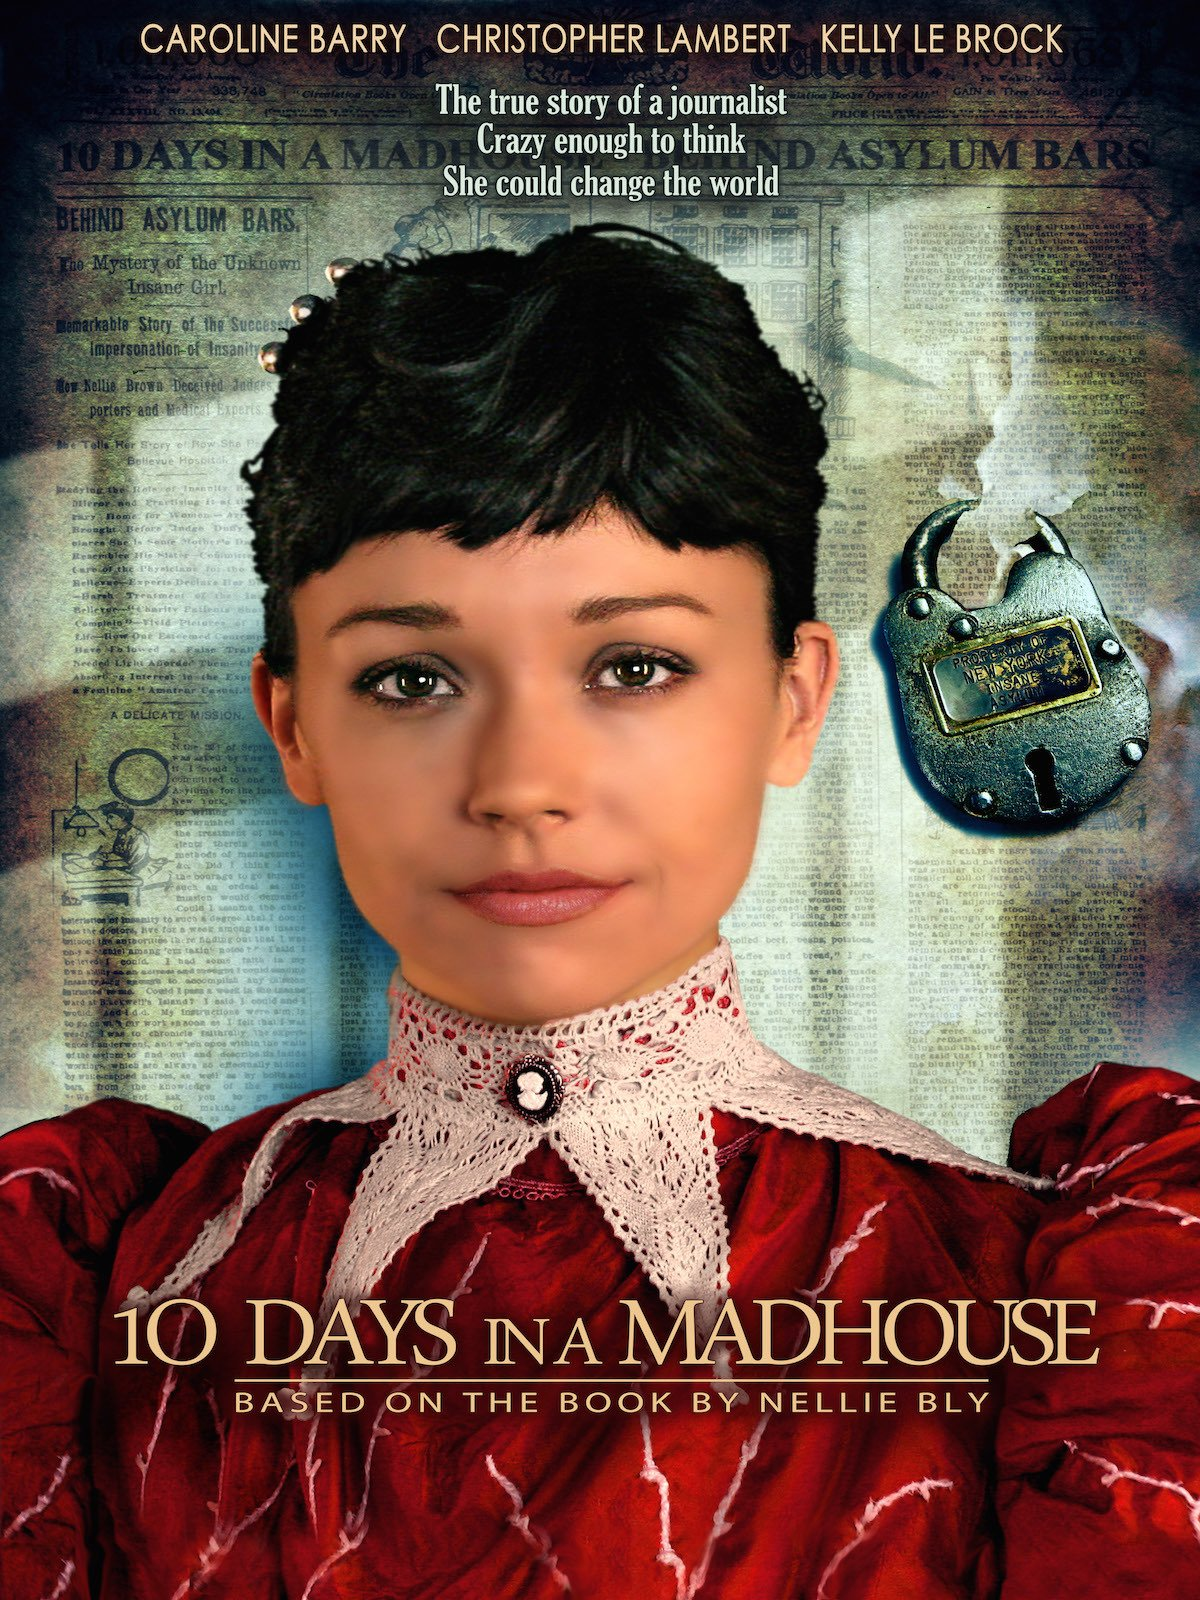 10 Days In A Madhouse